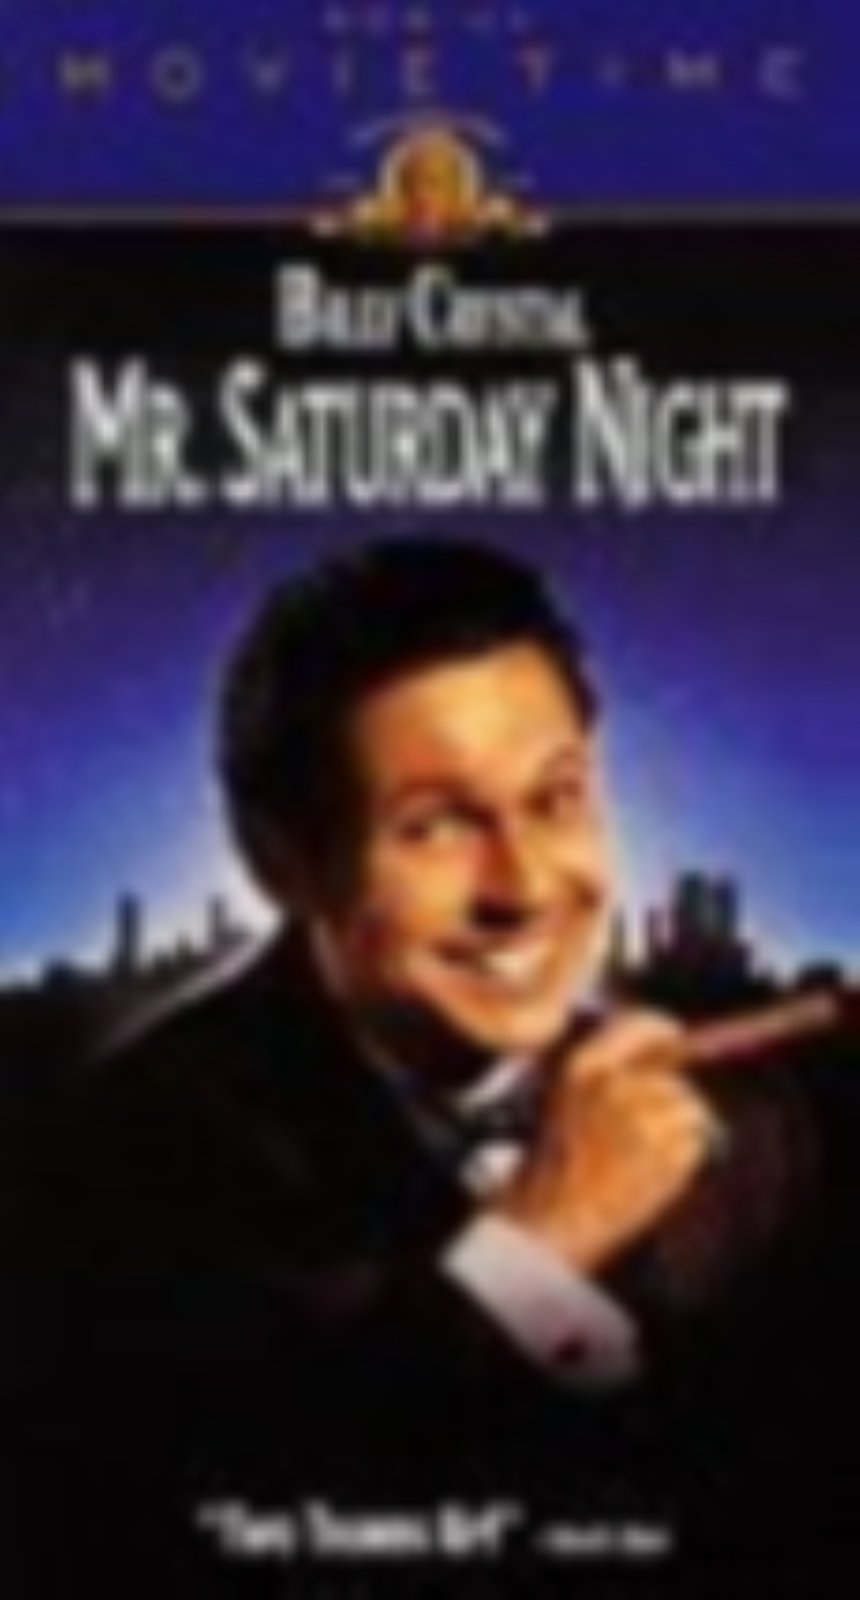 Mr. Saturday Night Vhs